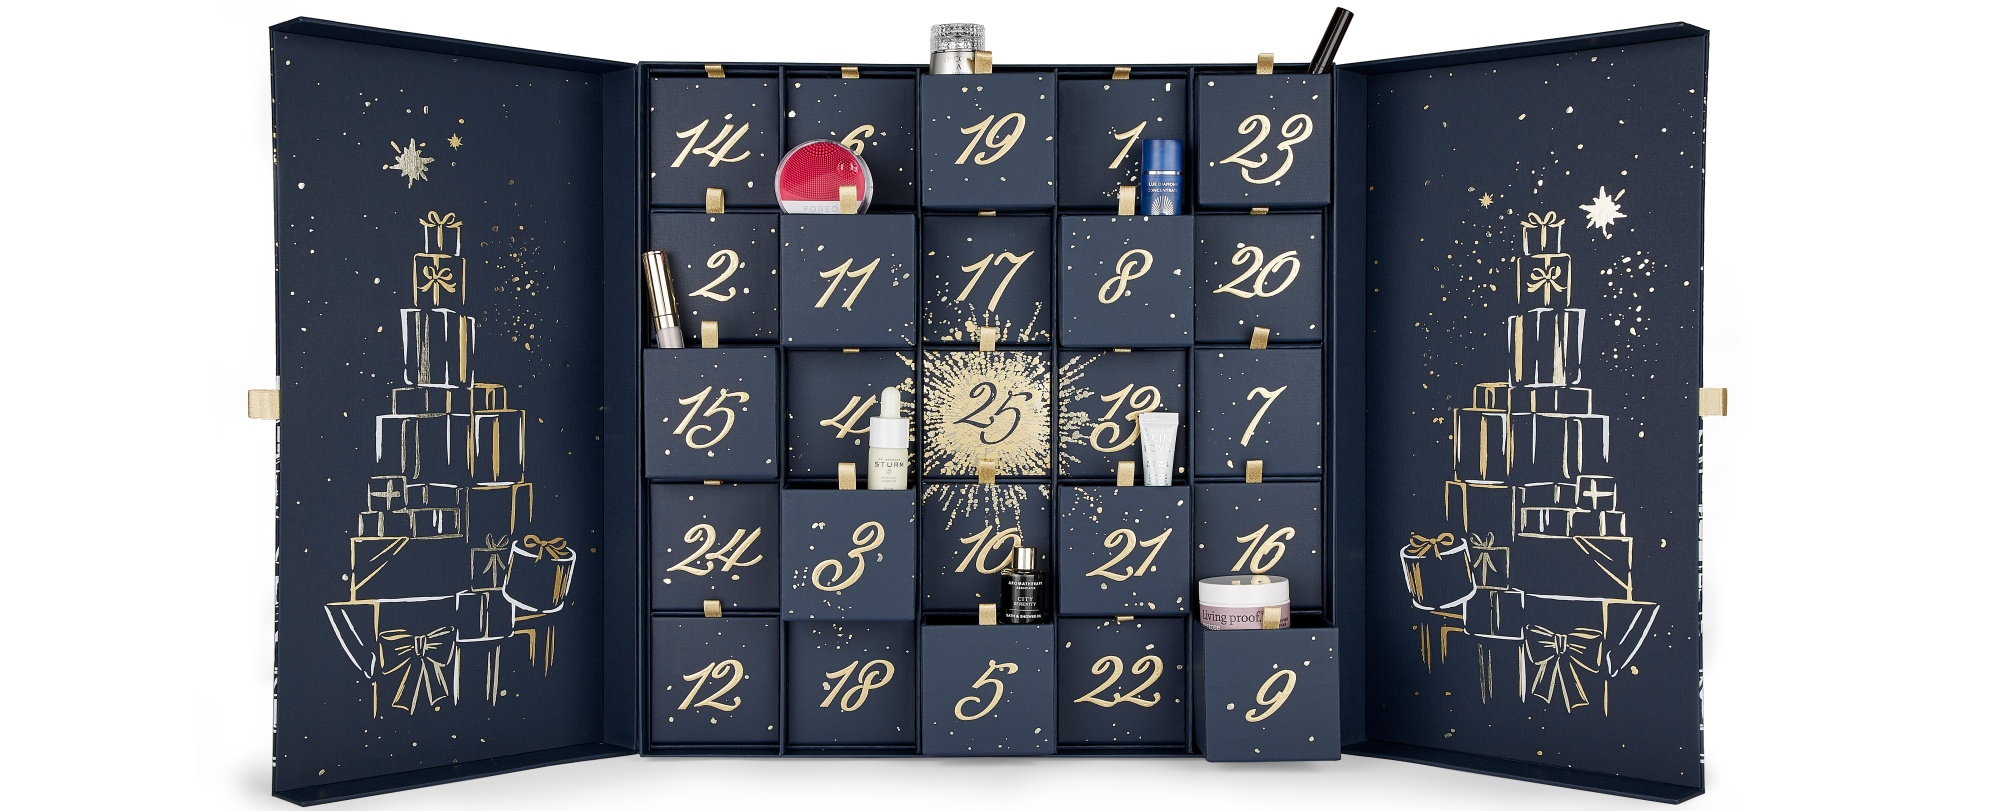 Harrods beauty advent calendar 2019 - The LDN Diaries